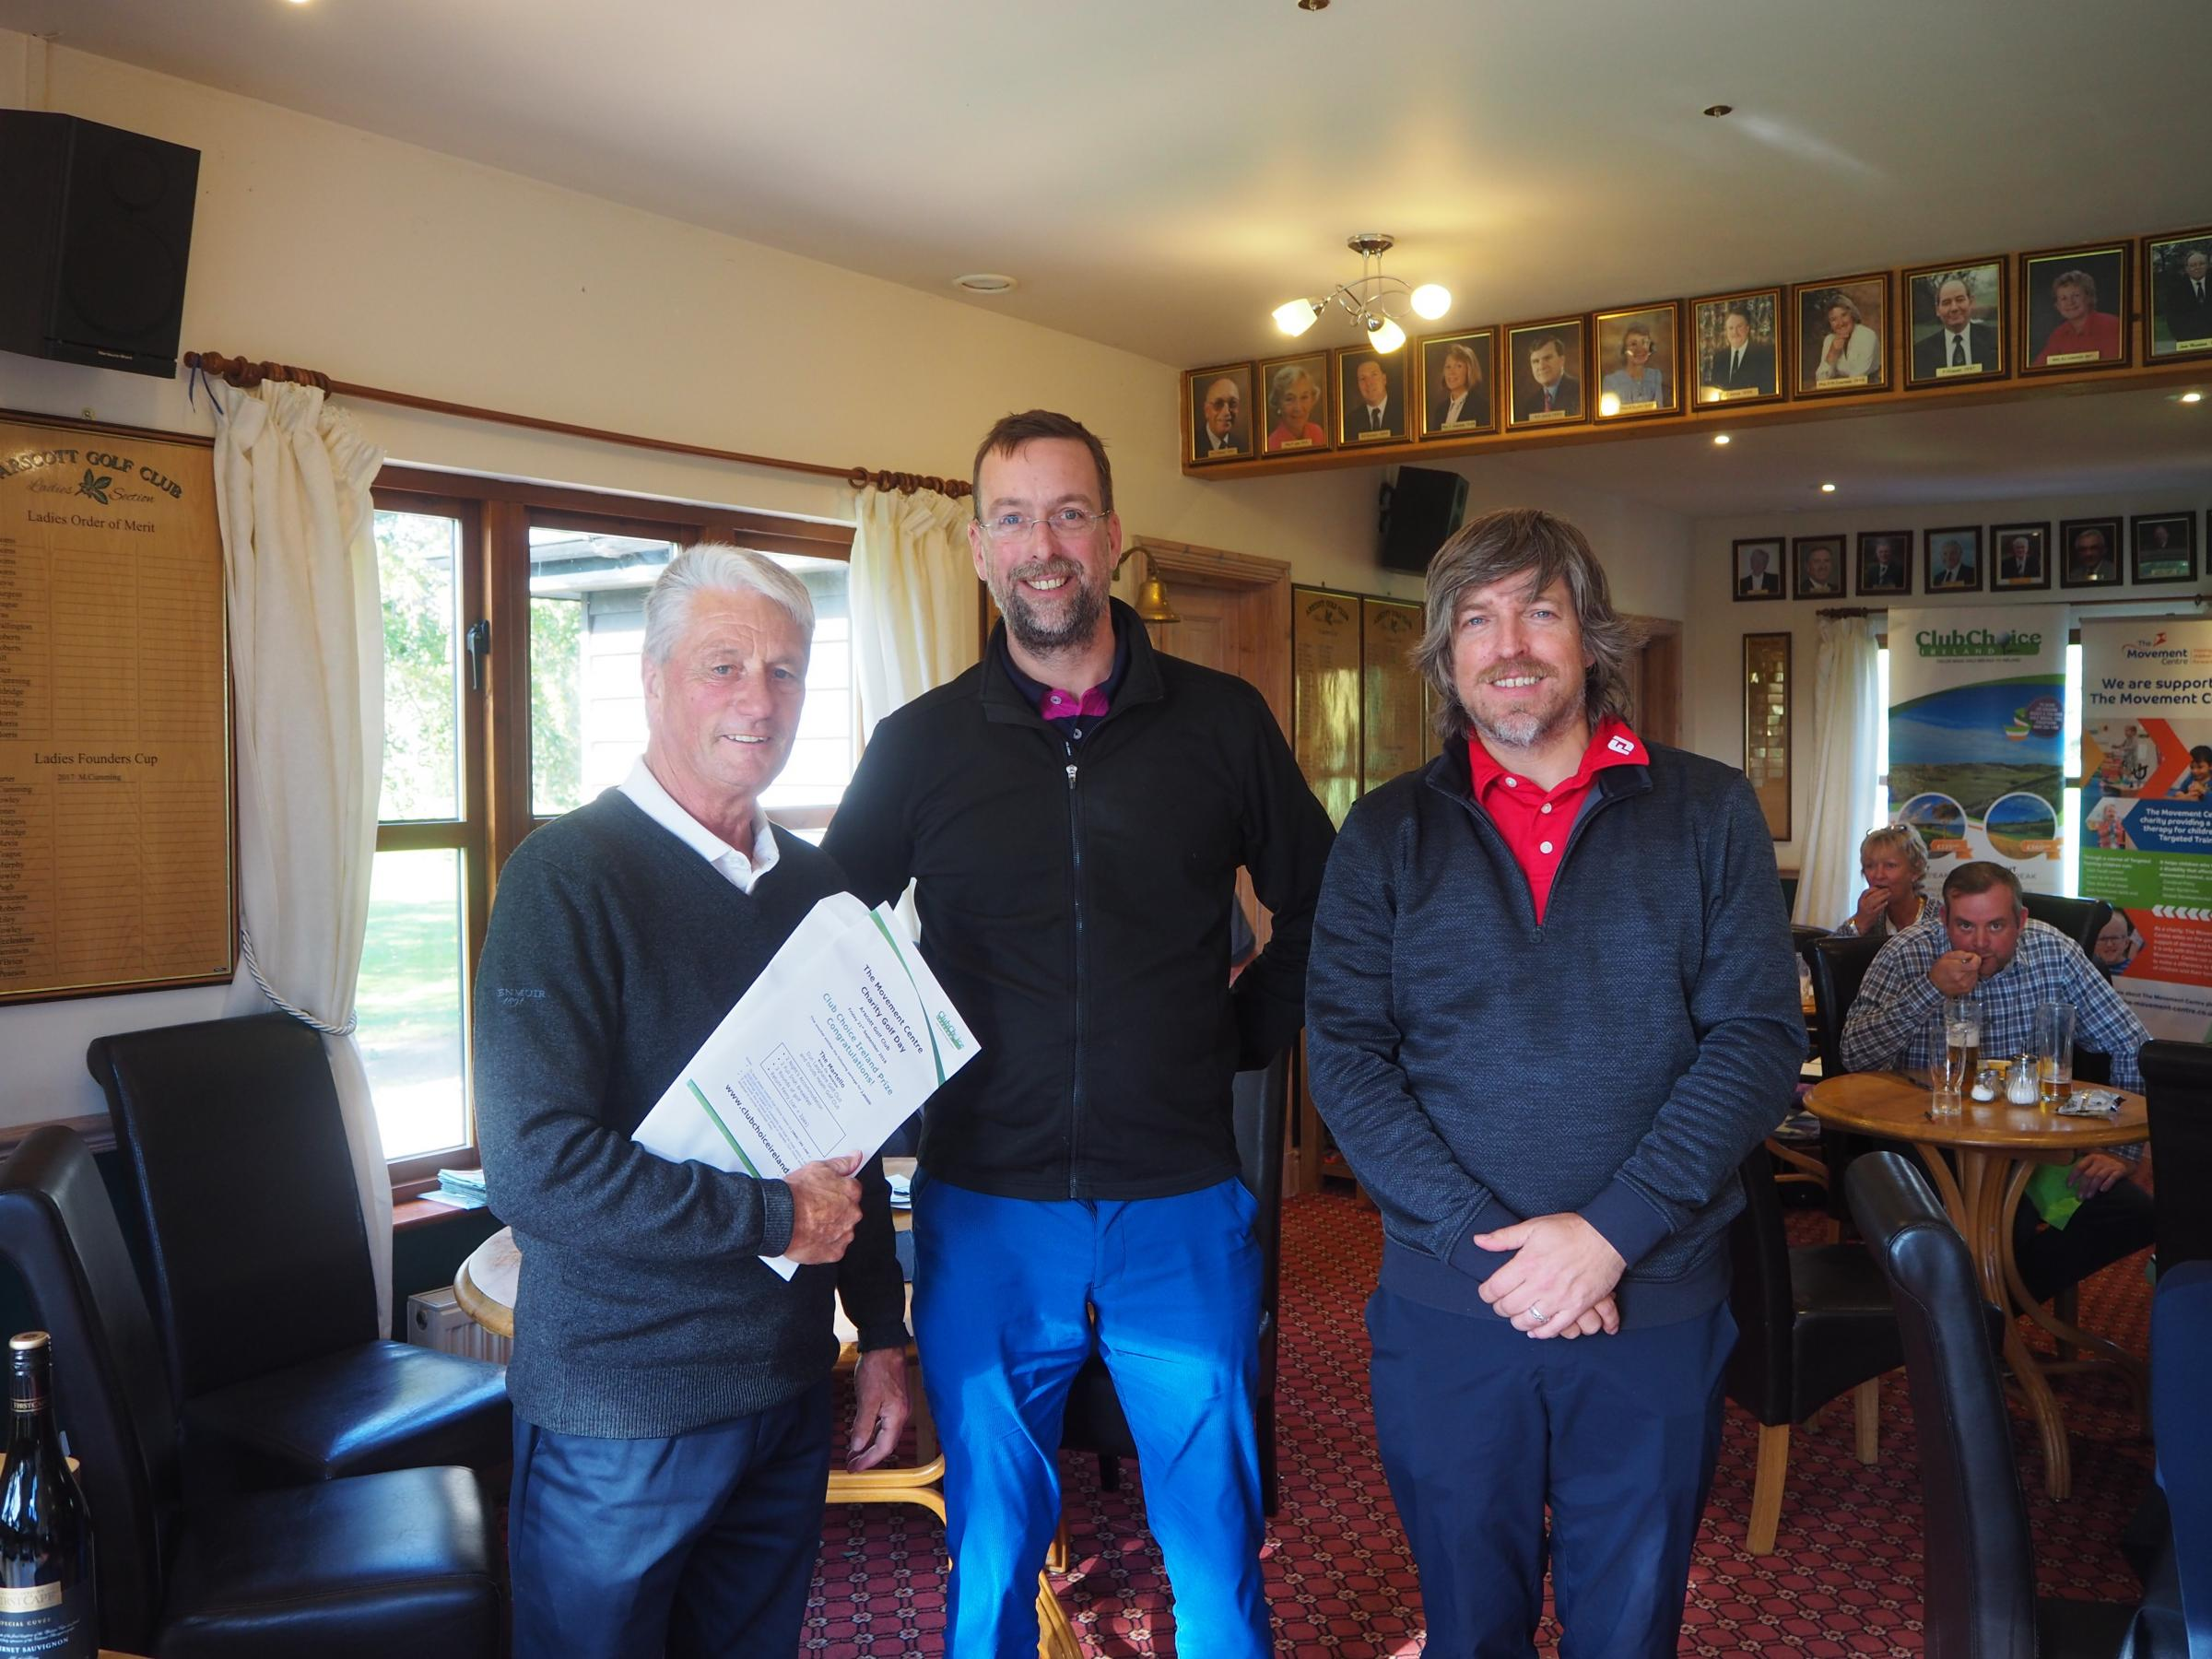 Larry Byrne, Club Choice Ireland, with winners Jonathan Pierce and Robert Williams from Harrisons Solicitors.